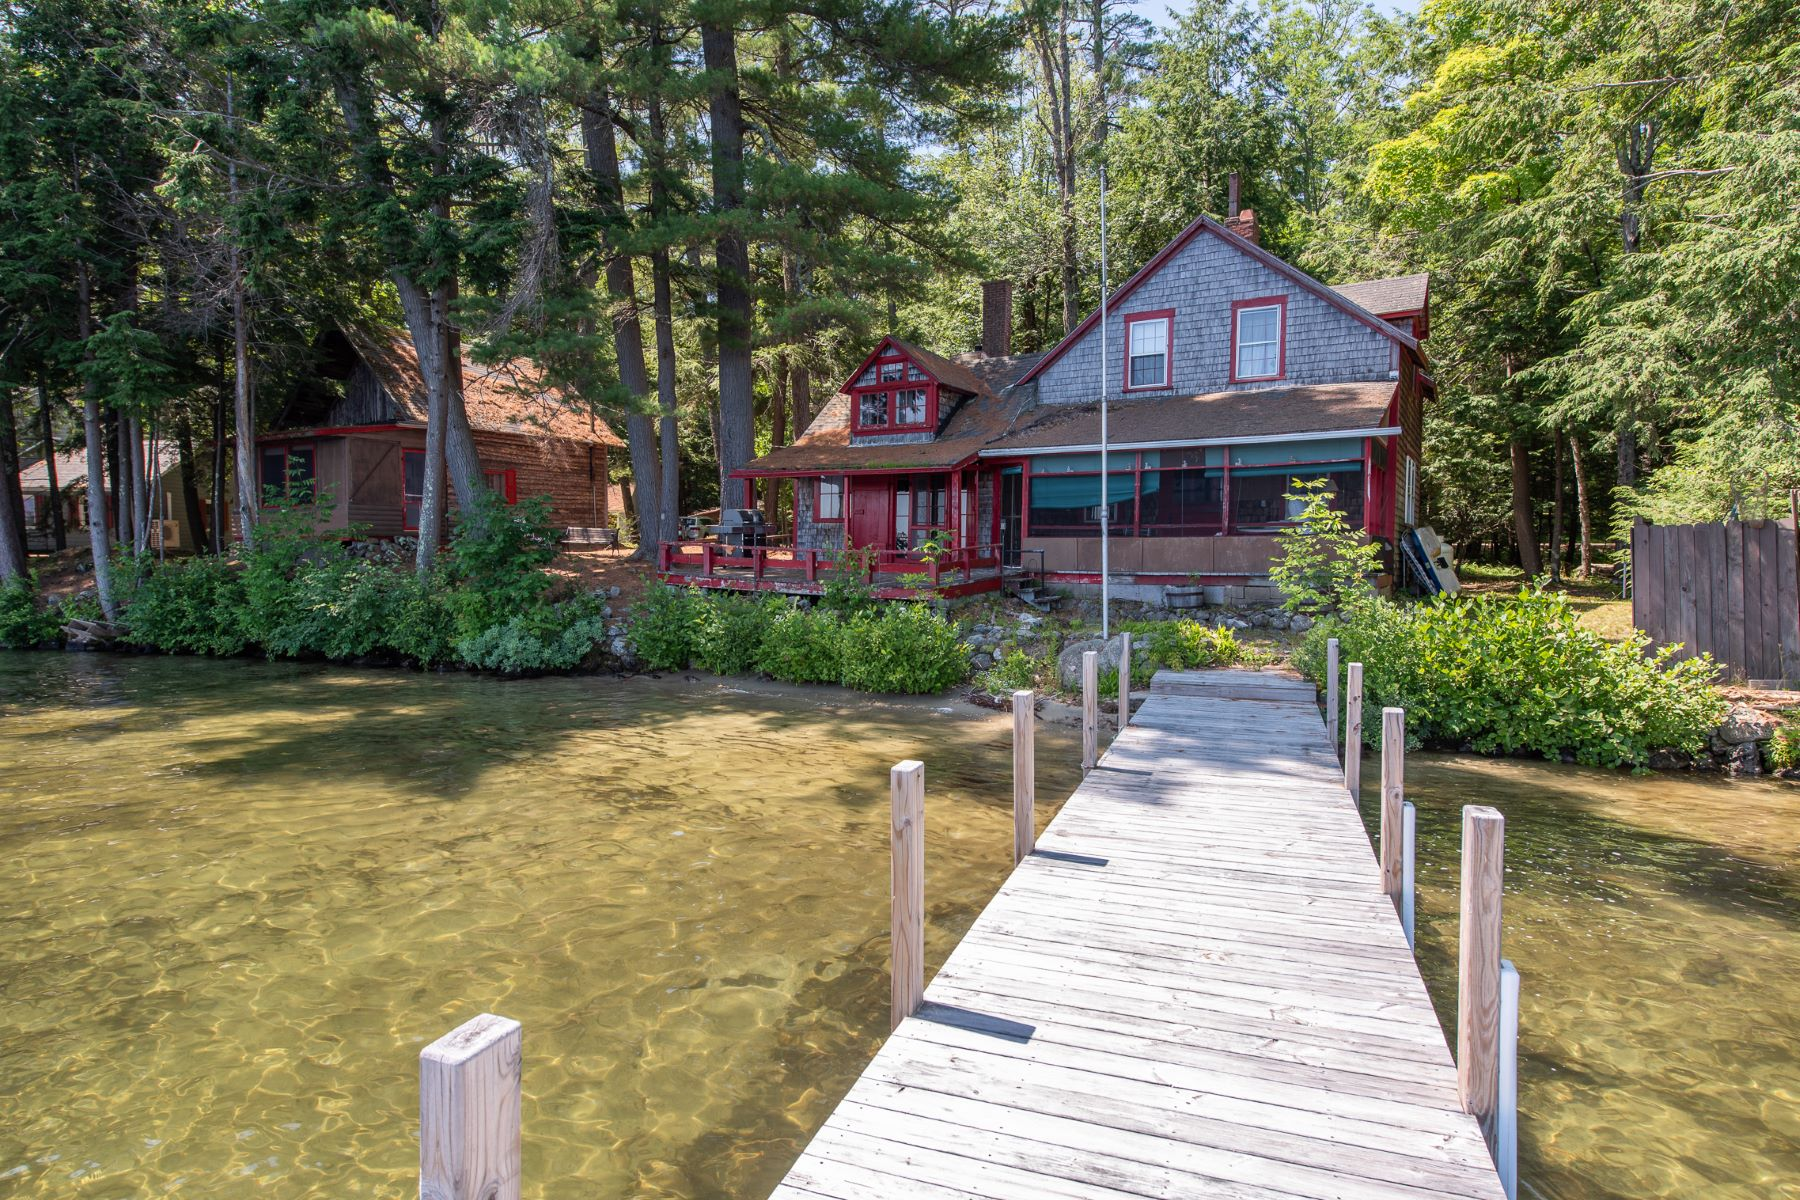 Single Family Homes для того Продажа на Winnipesaukee Meredith Waterfront 5 & 6 Lovejoy Ln, Meredith, Нью-Гэмпшир 03253 Соединенные Штаты